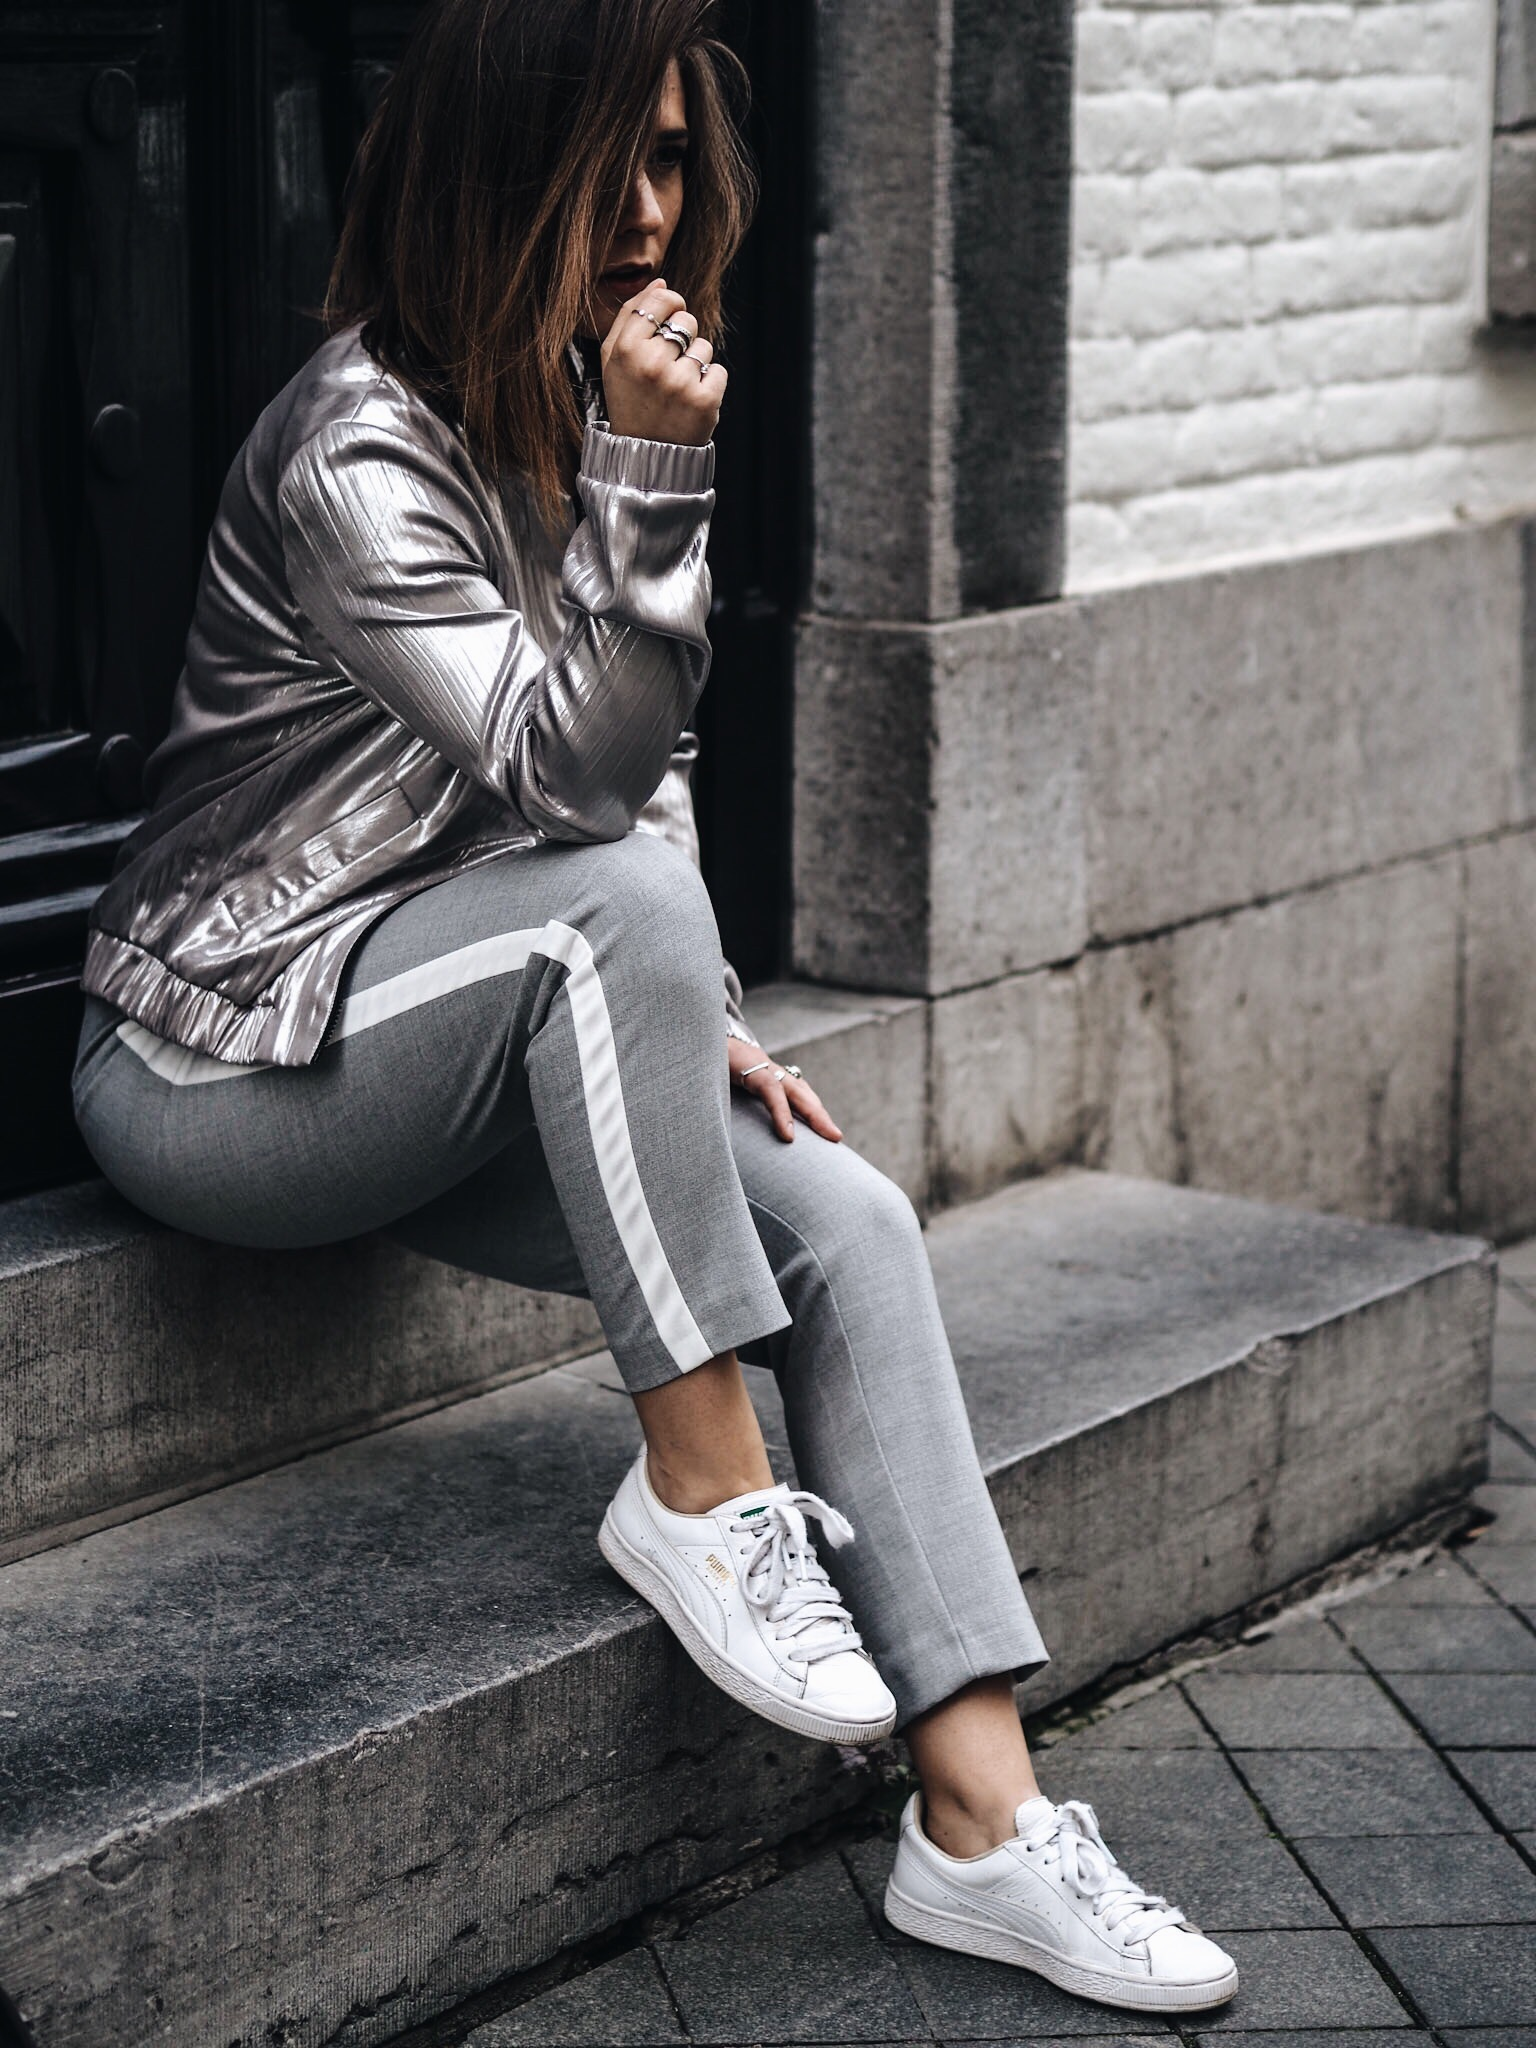 allthtchoices by laura fashionblog mainz frankfurt athleisure puma basket soliver fusion collection silberner blouson